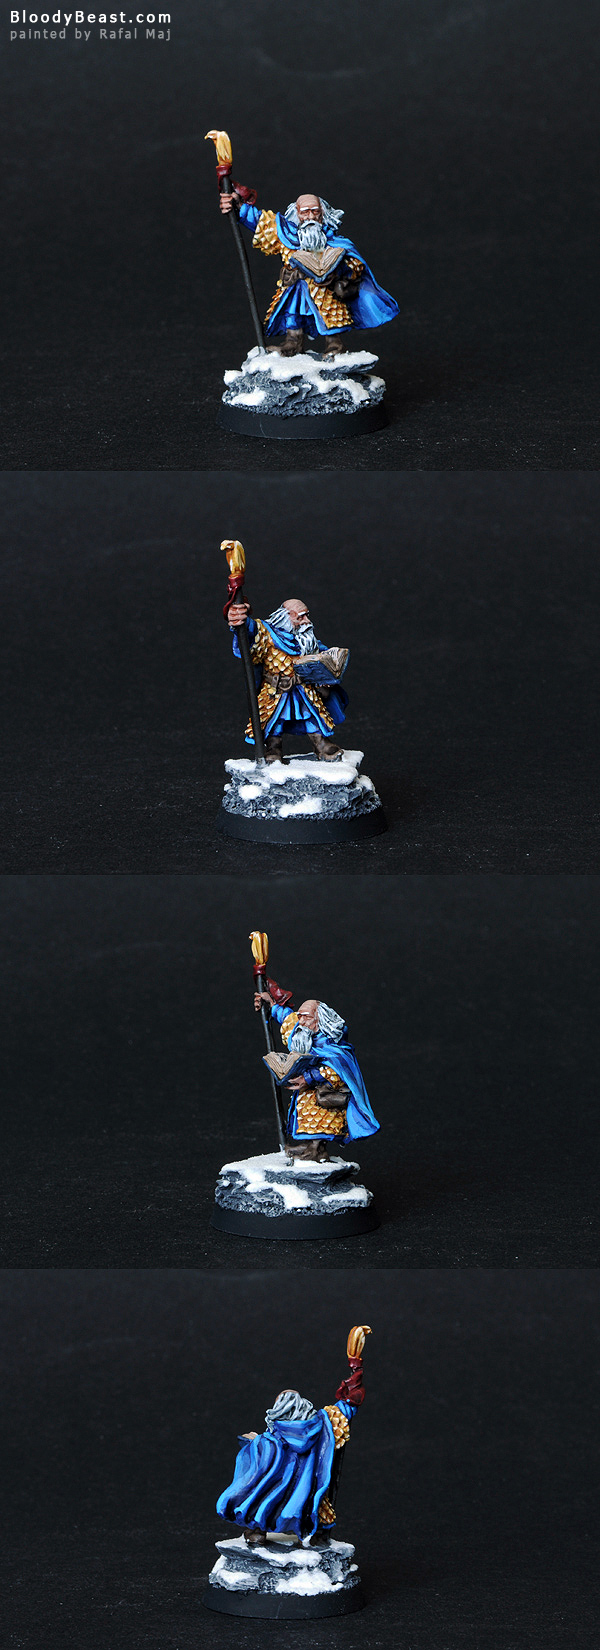 Floi Stonehand, Loremaster of Moria painted by Rafal Maj (BloodyBeast.com)